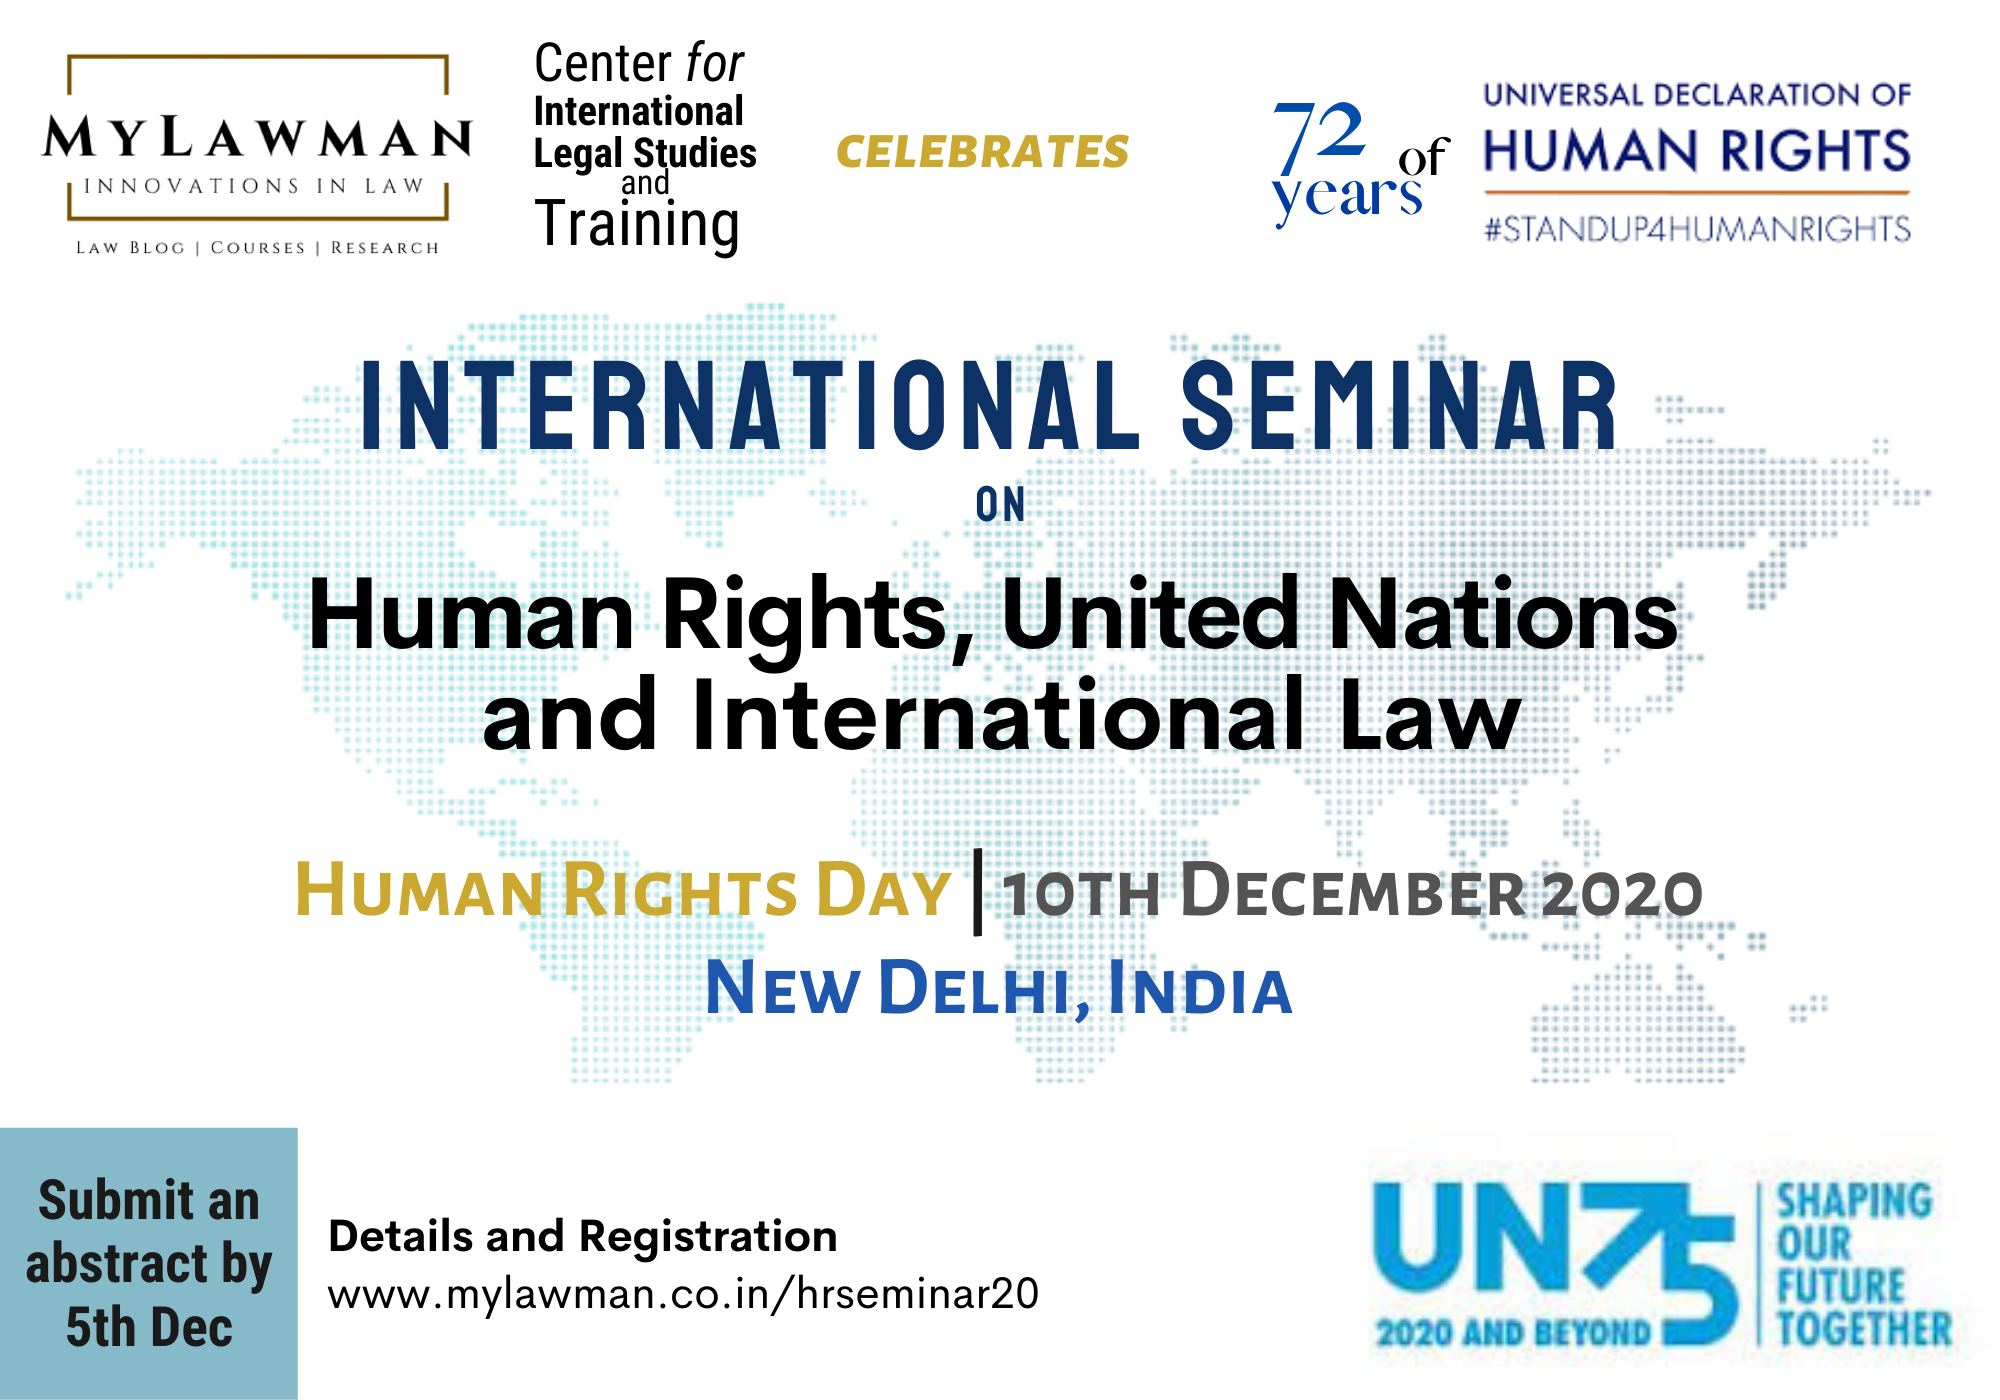 [Call for Paper] International Seminar on Human Rights & International Law on Human Rights Day (10 Dec) by MyLawman [Submit Abstract by 5 Dec]